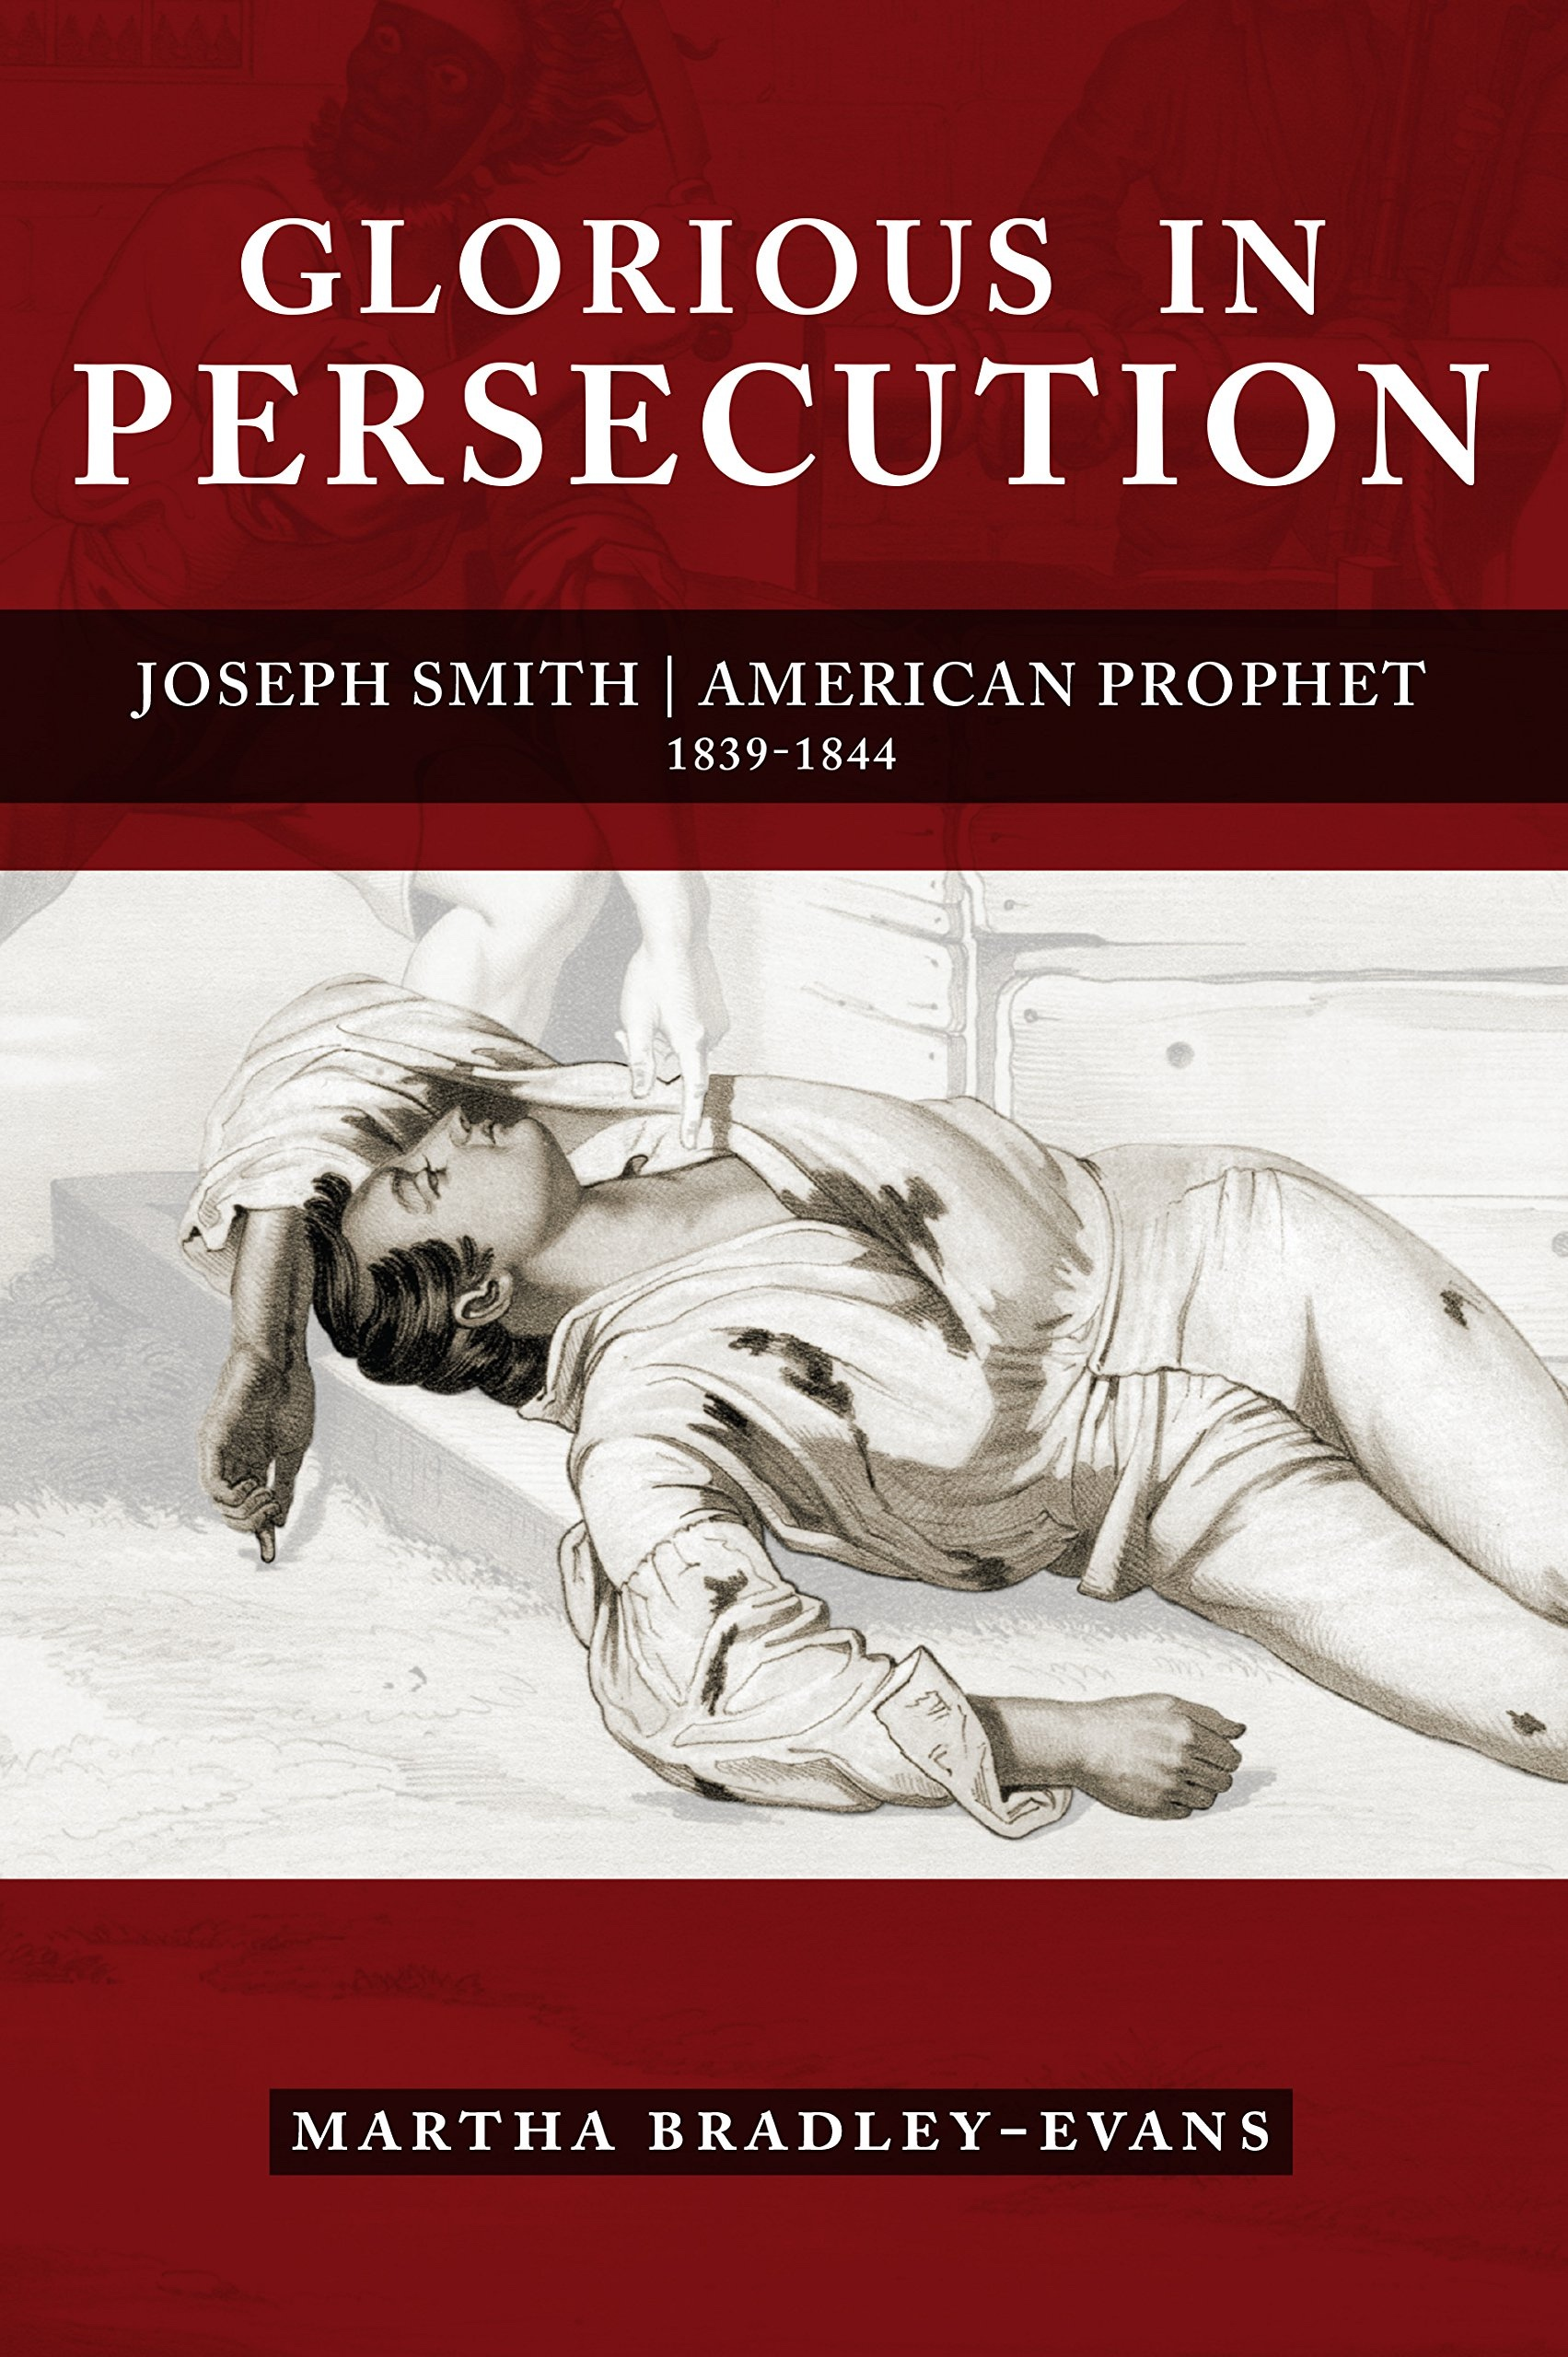 Image for Glorious in Persecution: Joseph Smith, American Prophet, 1839-1844